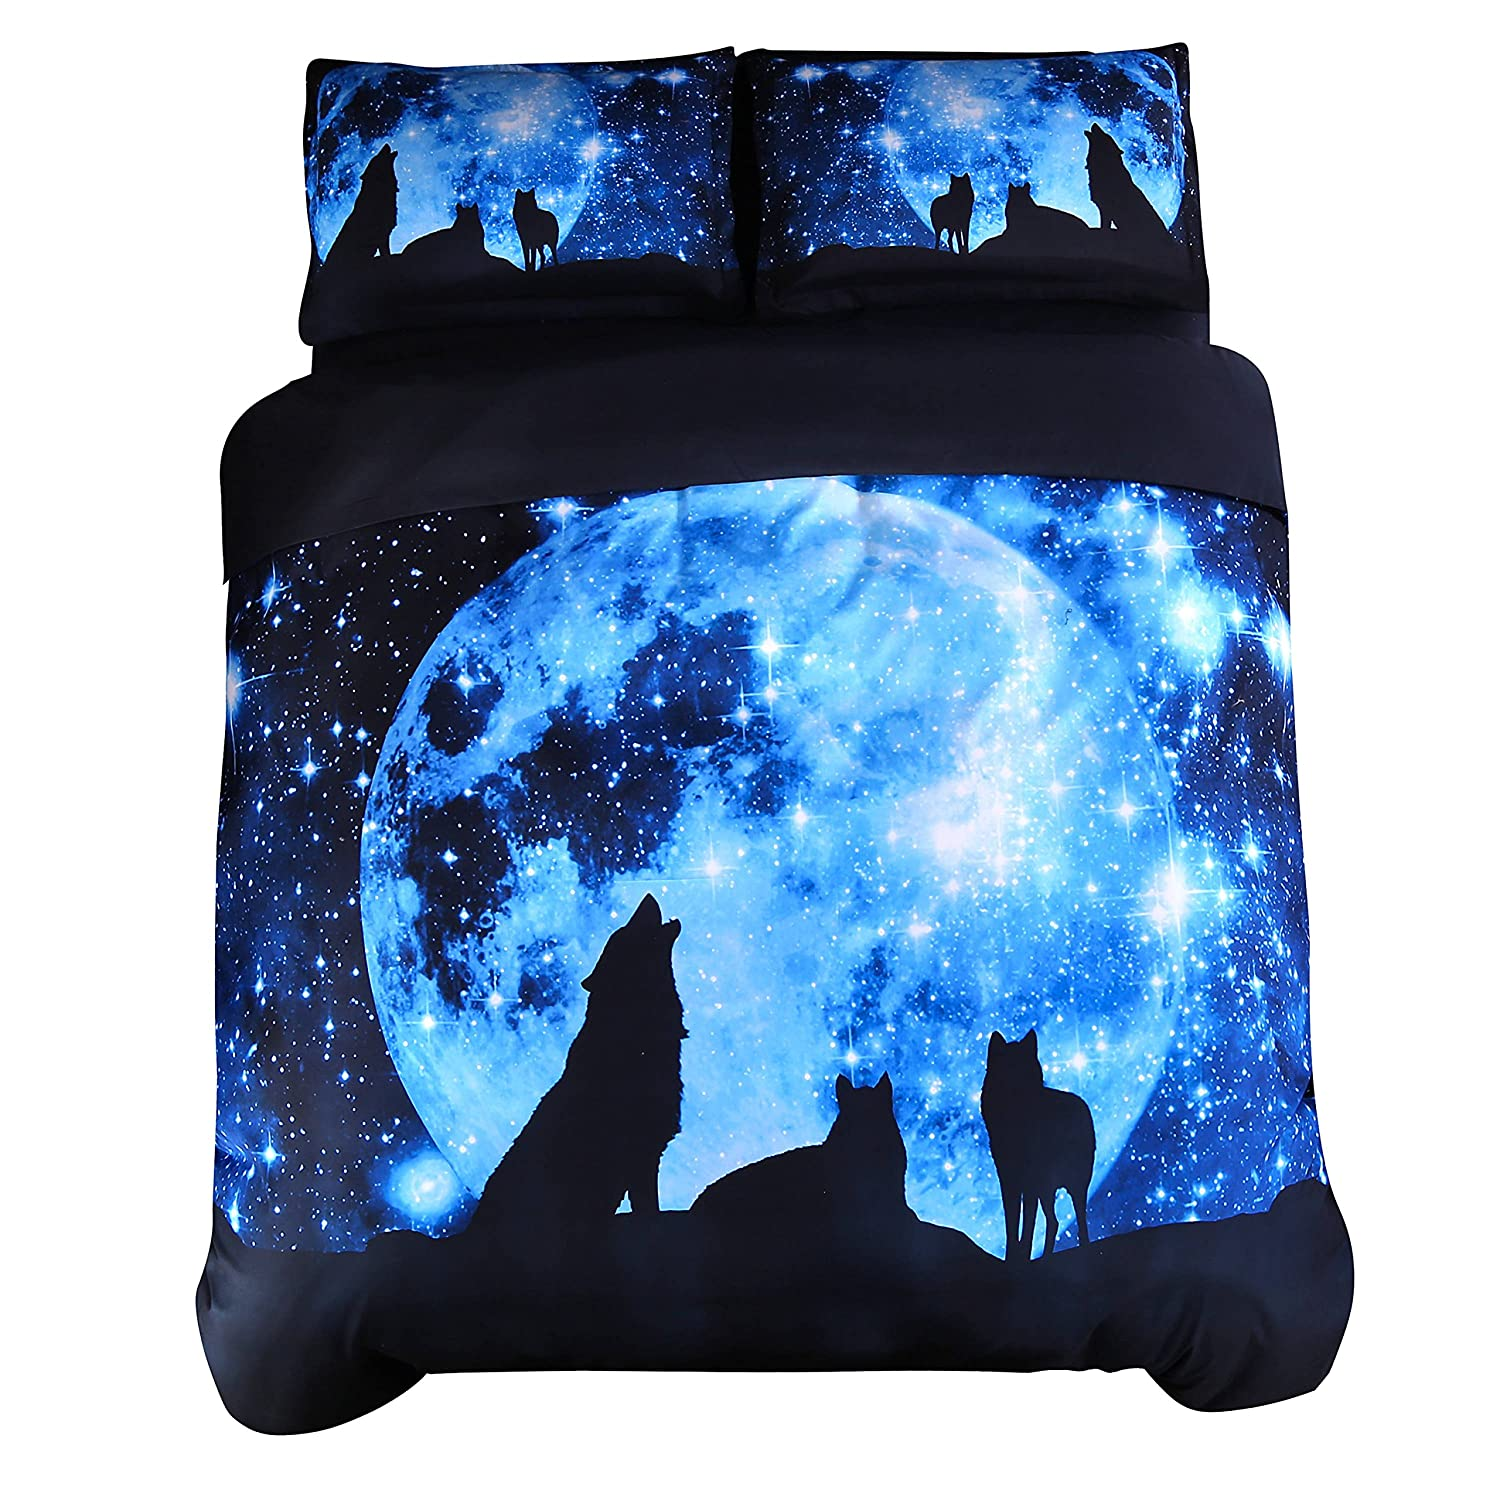 Ammybeddings 5 Piece Soft 3D Bedding Sets, Twin Size, 3D Luxury Blue Wolf and Galaxy Comforter Cover Set,1 Black Bed Sheet,1 Quilt/Duvet Cover, 1 White Comforter and 2 Pillow Shams Included